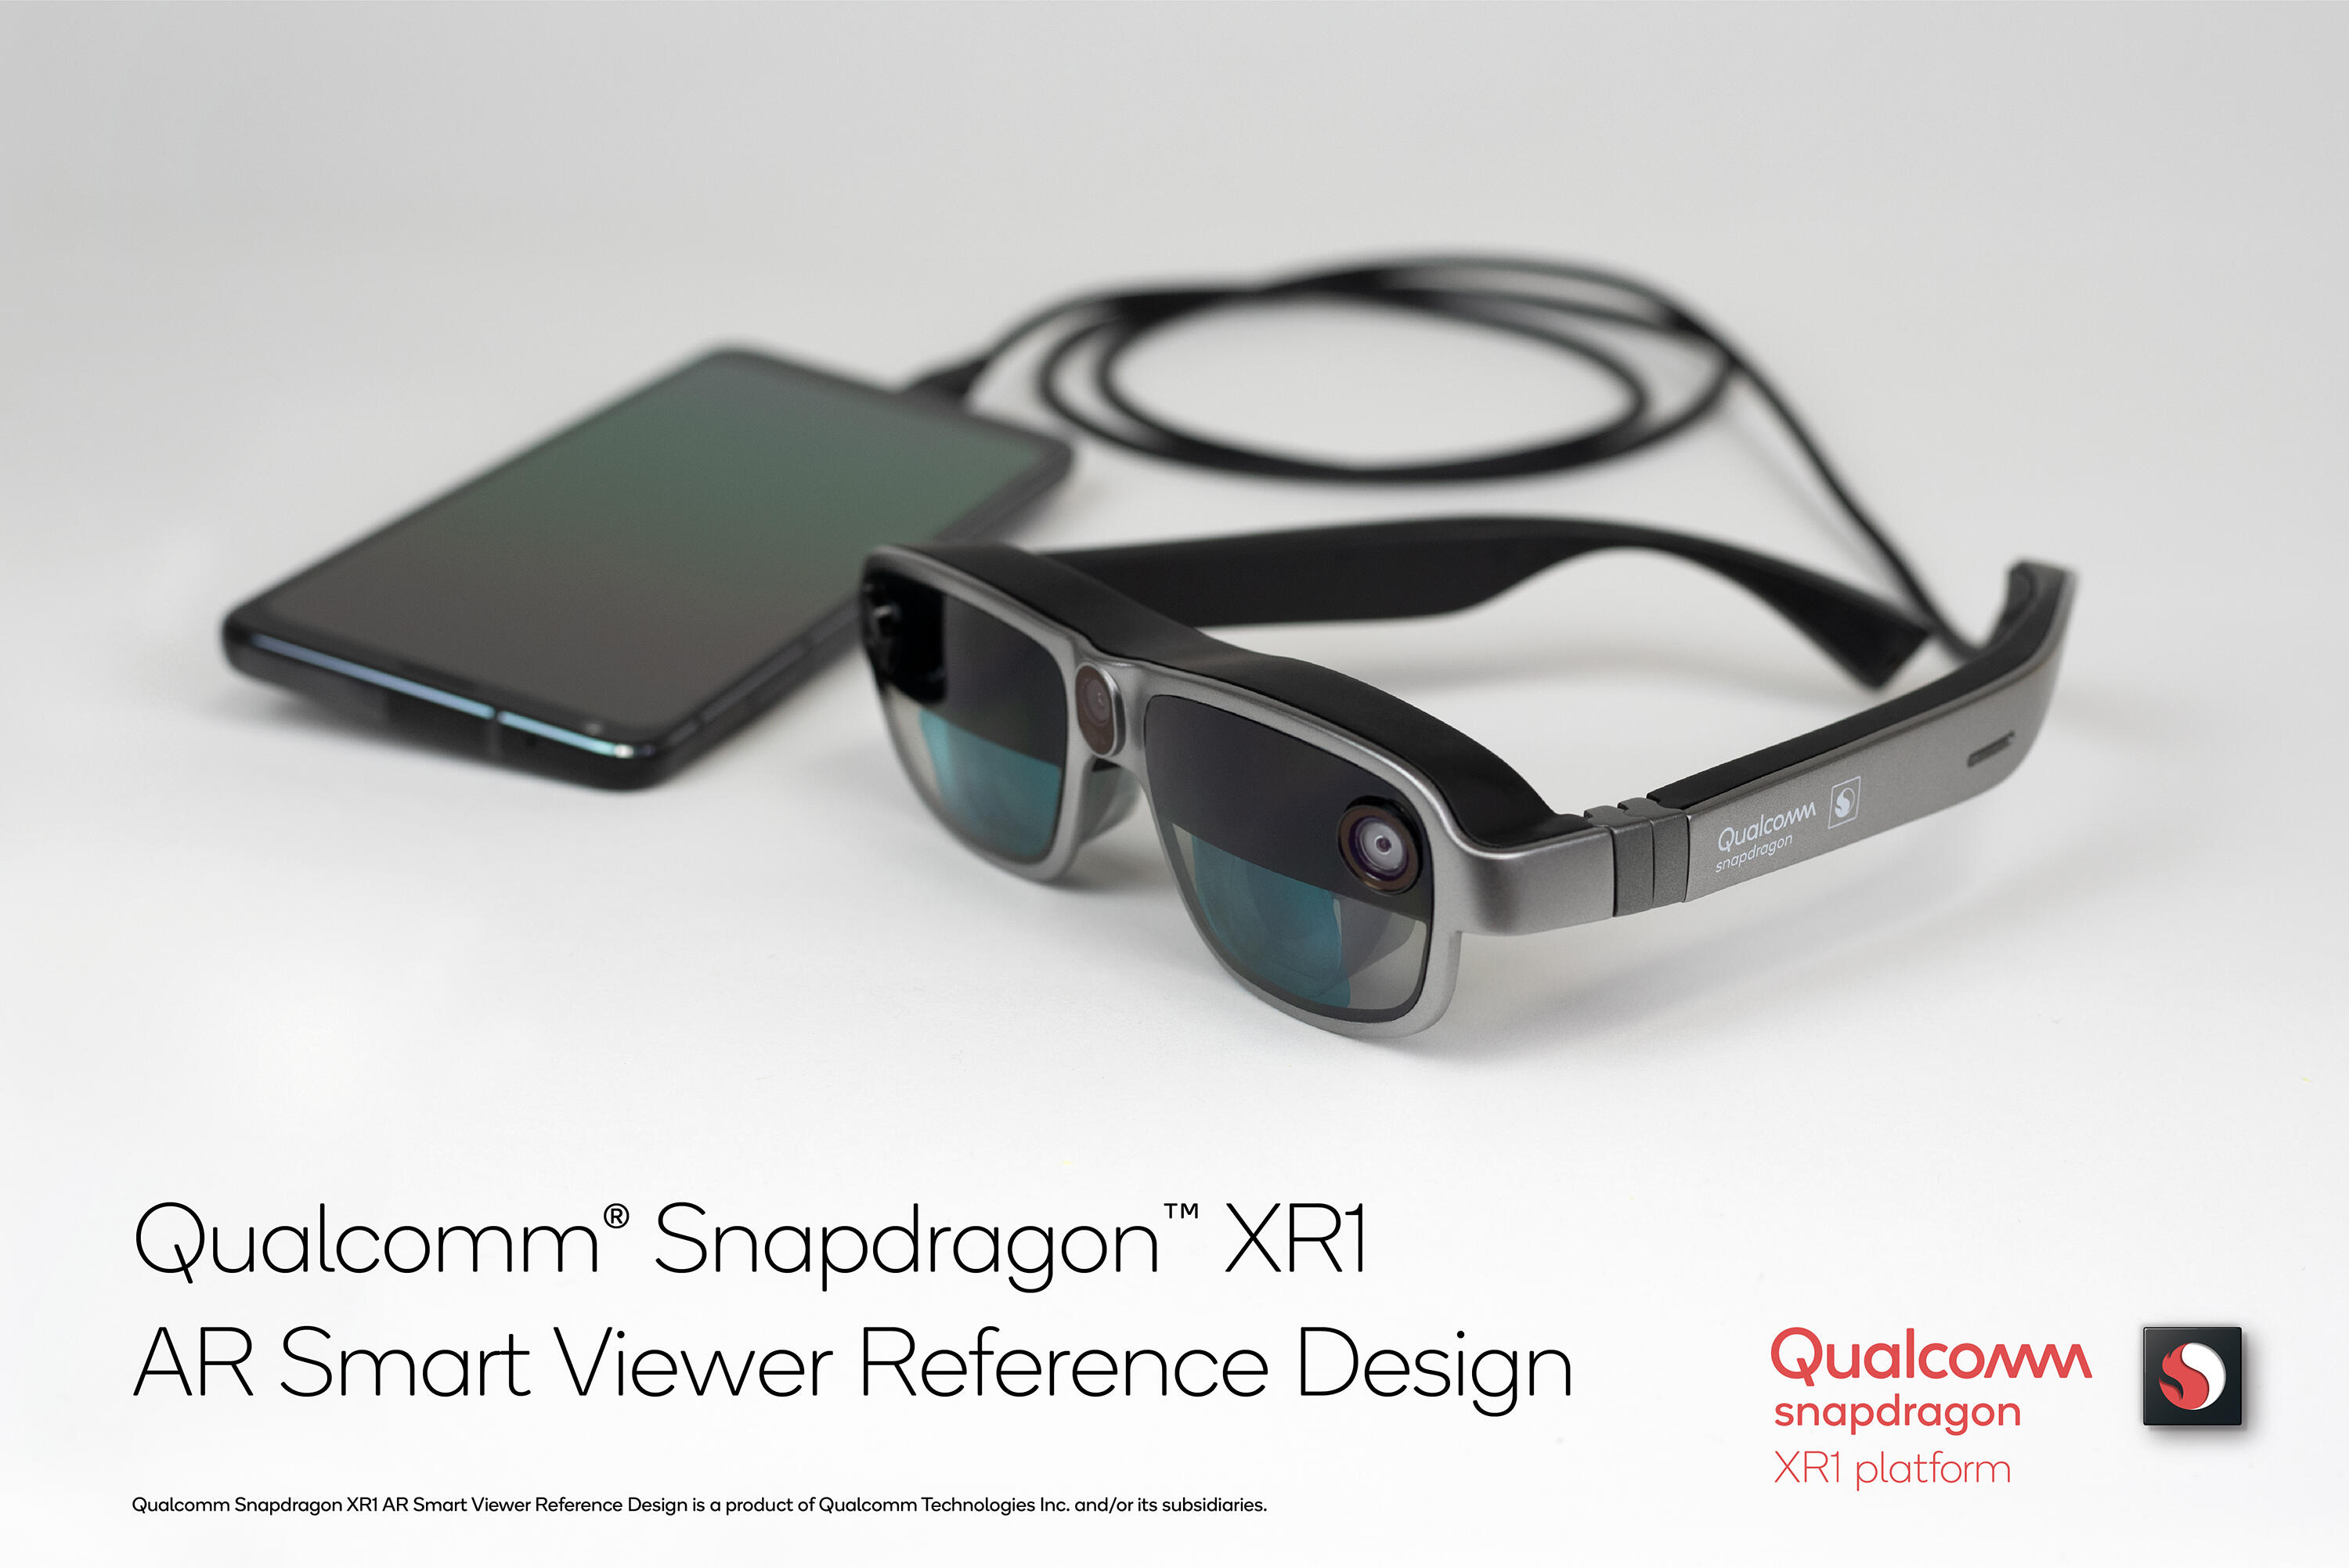 product-shot-1-xr1-ar-reference-design